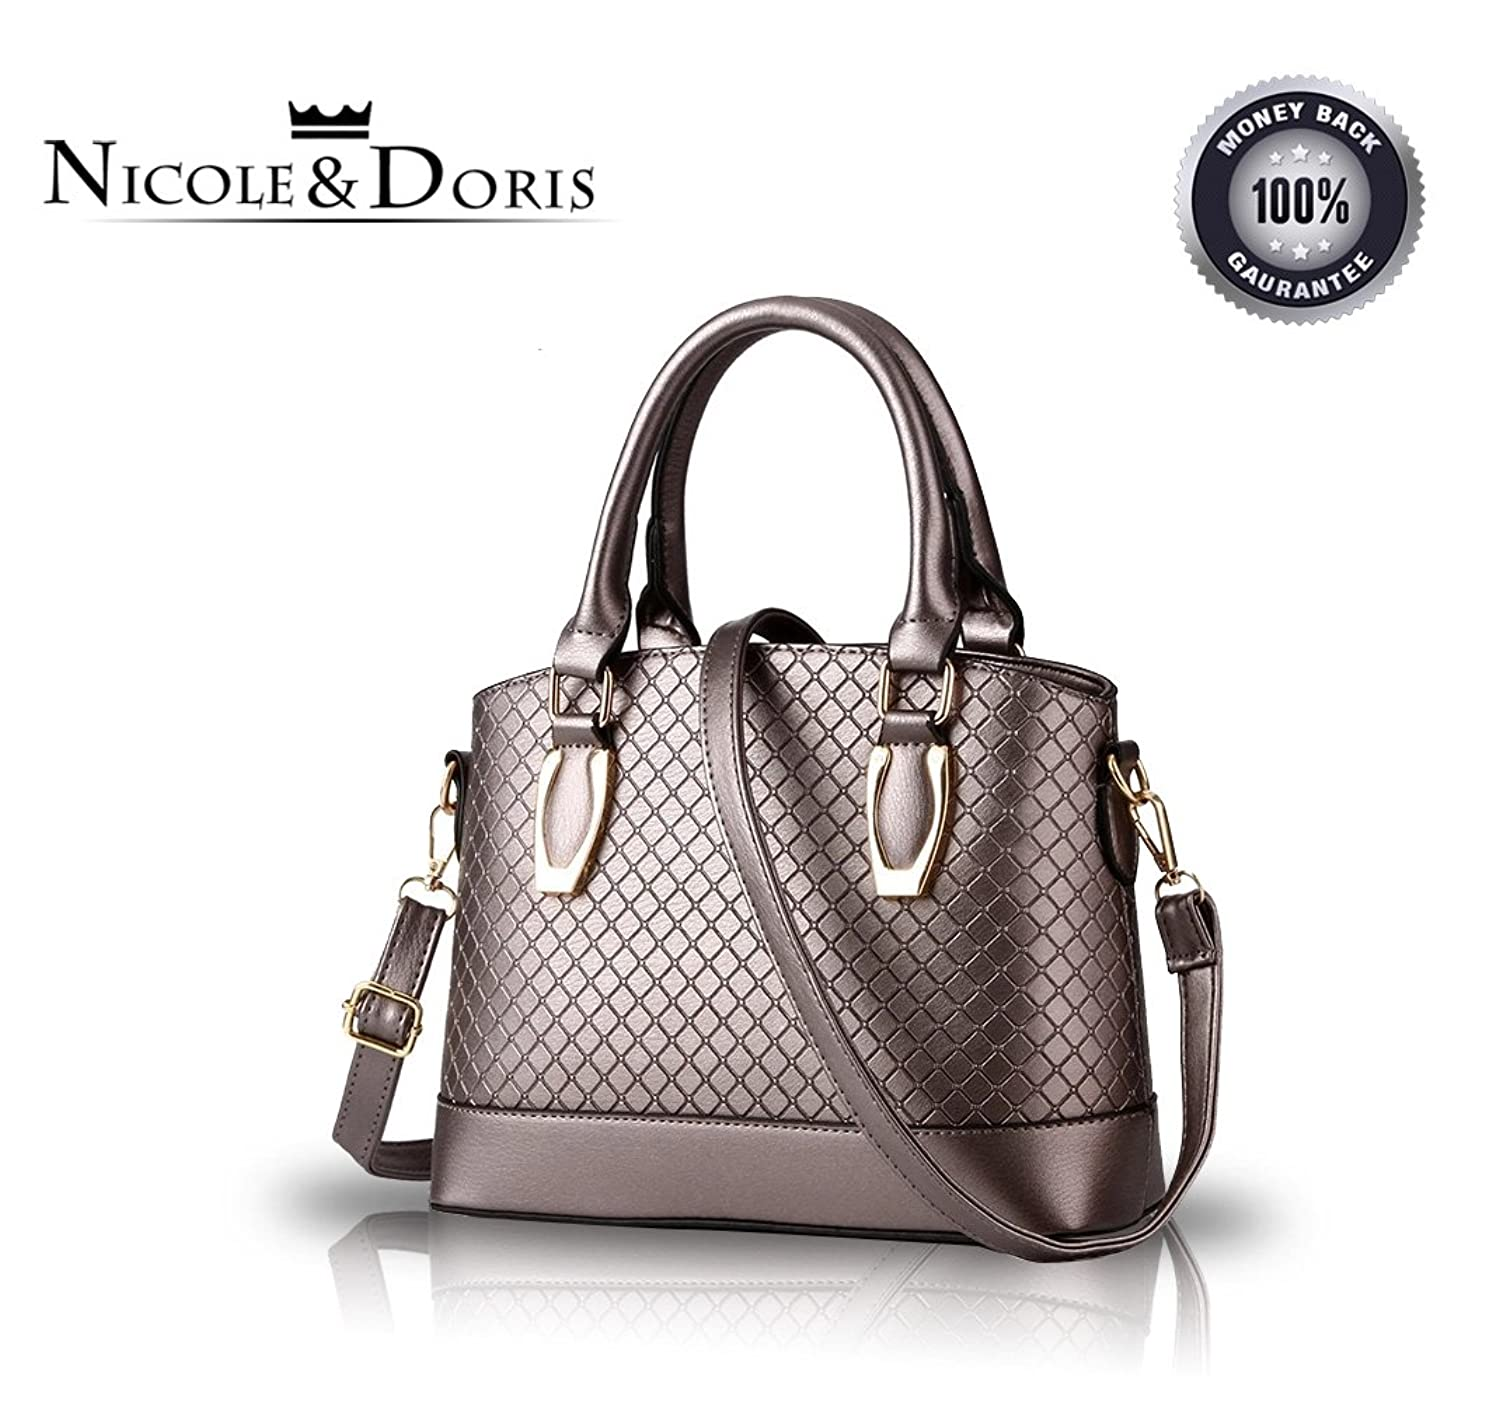 NICOLE&DORIS 2016 new women purse demeanor atmospheric fashion handbags shoulder bag Messenger bags